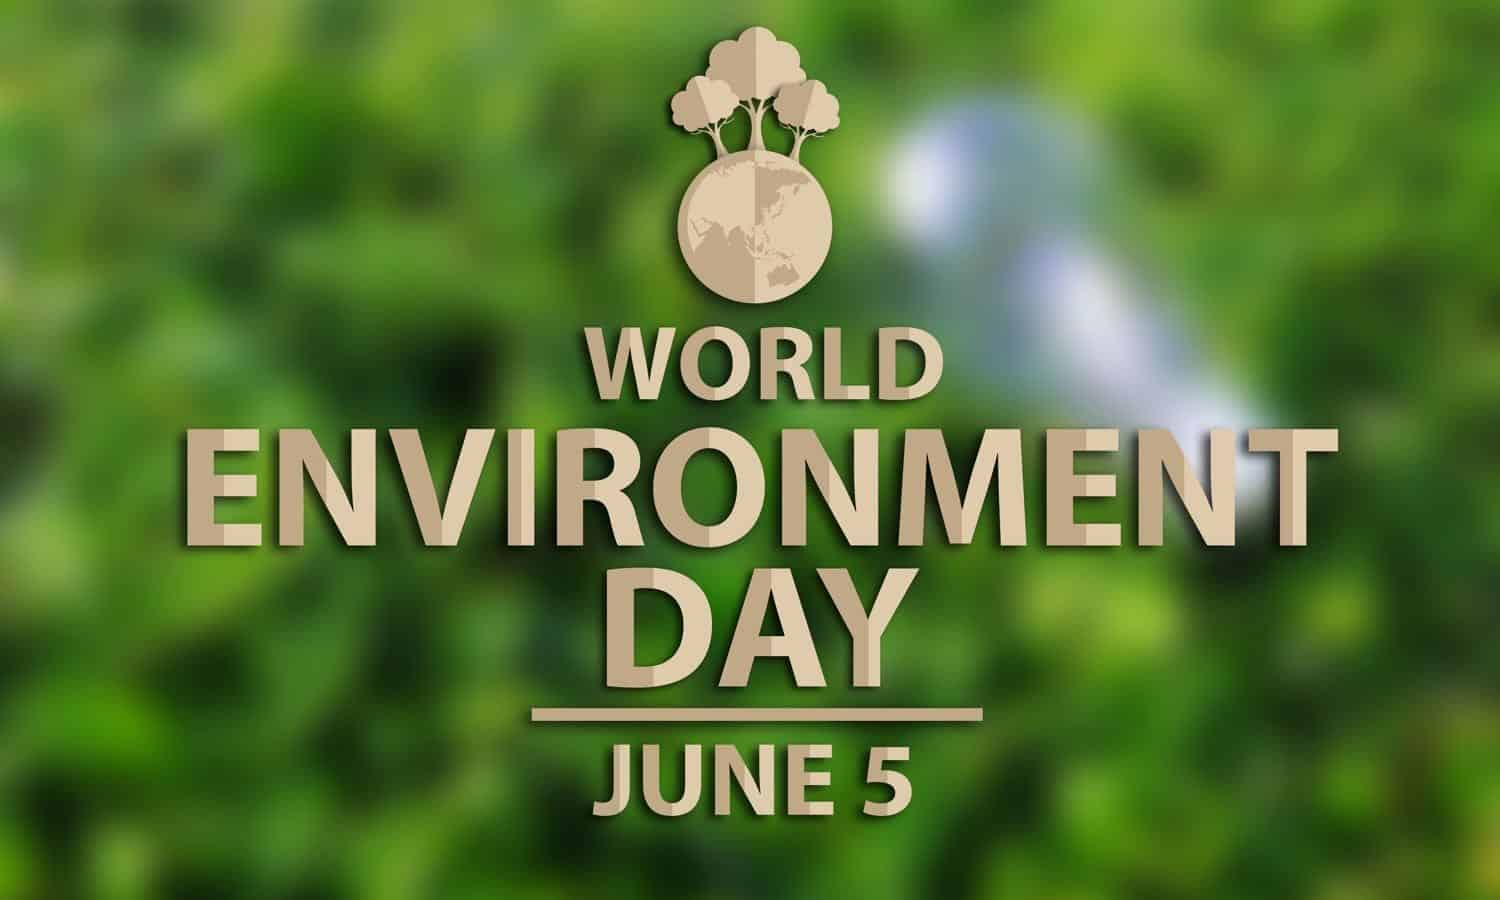 This World Environment Day Consume Food More Responsibly